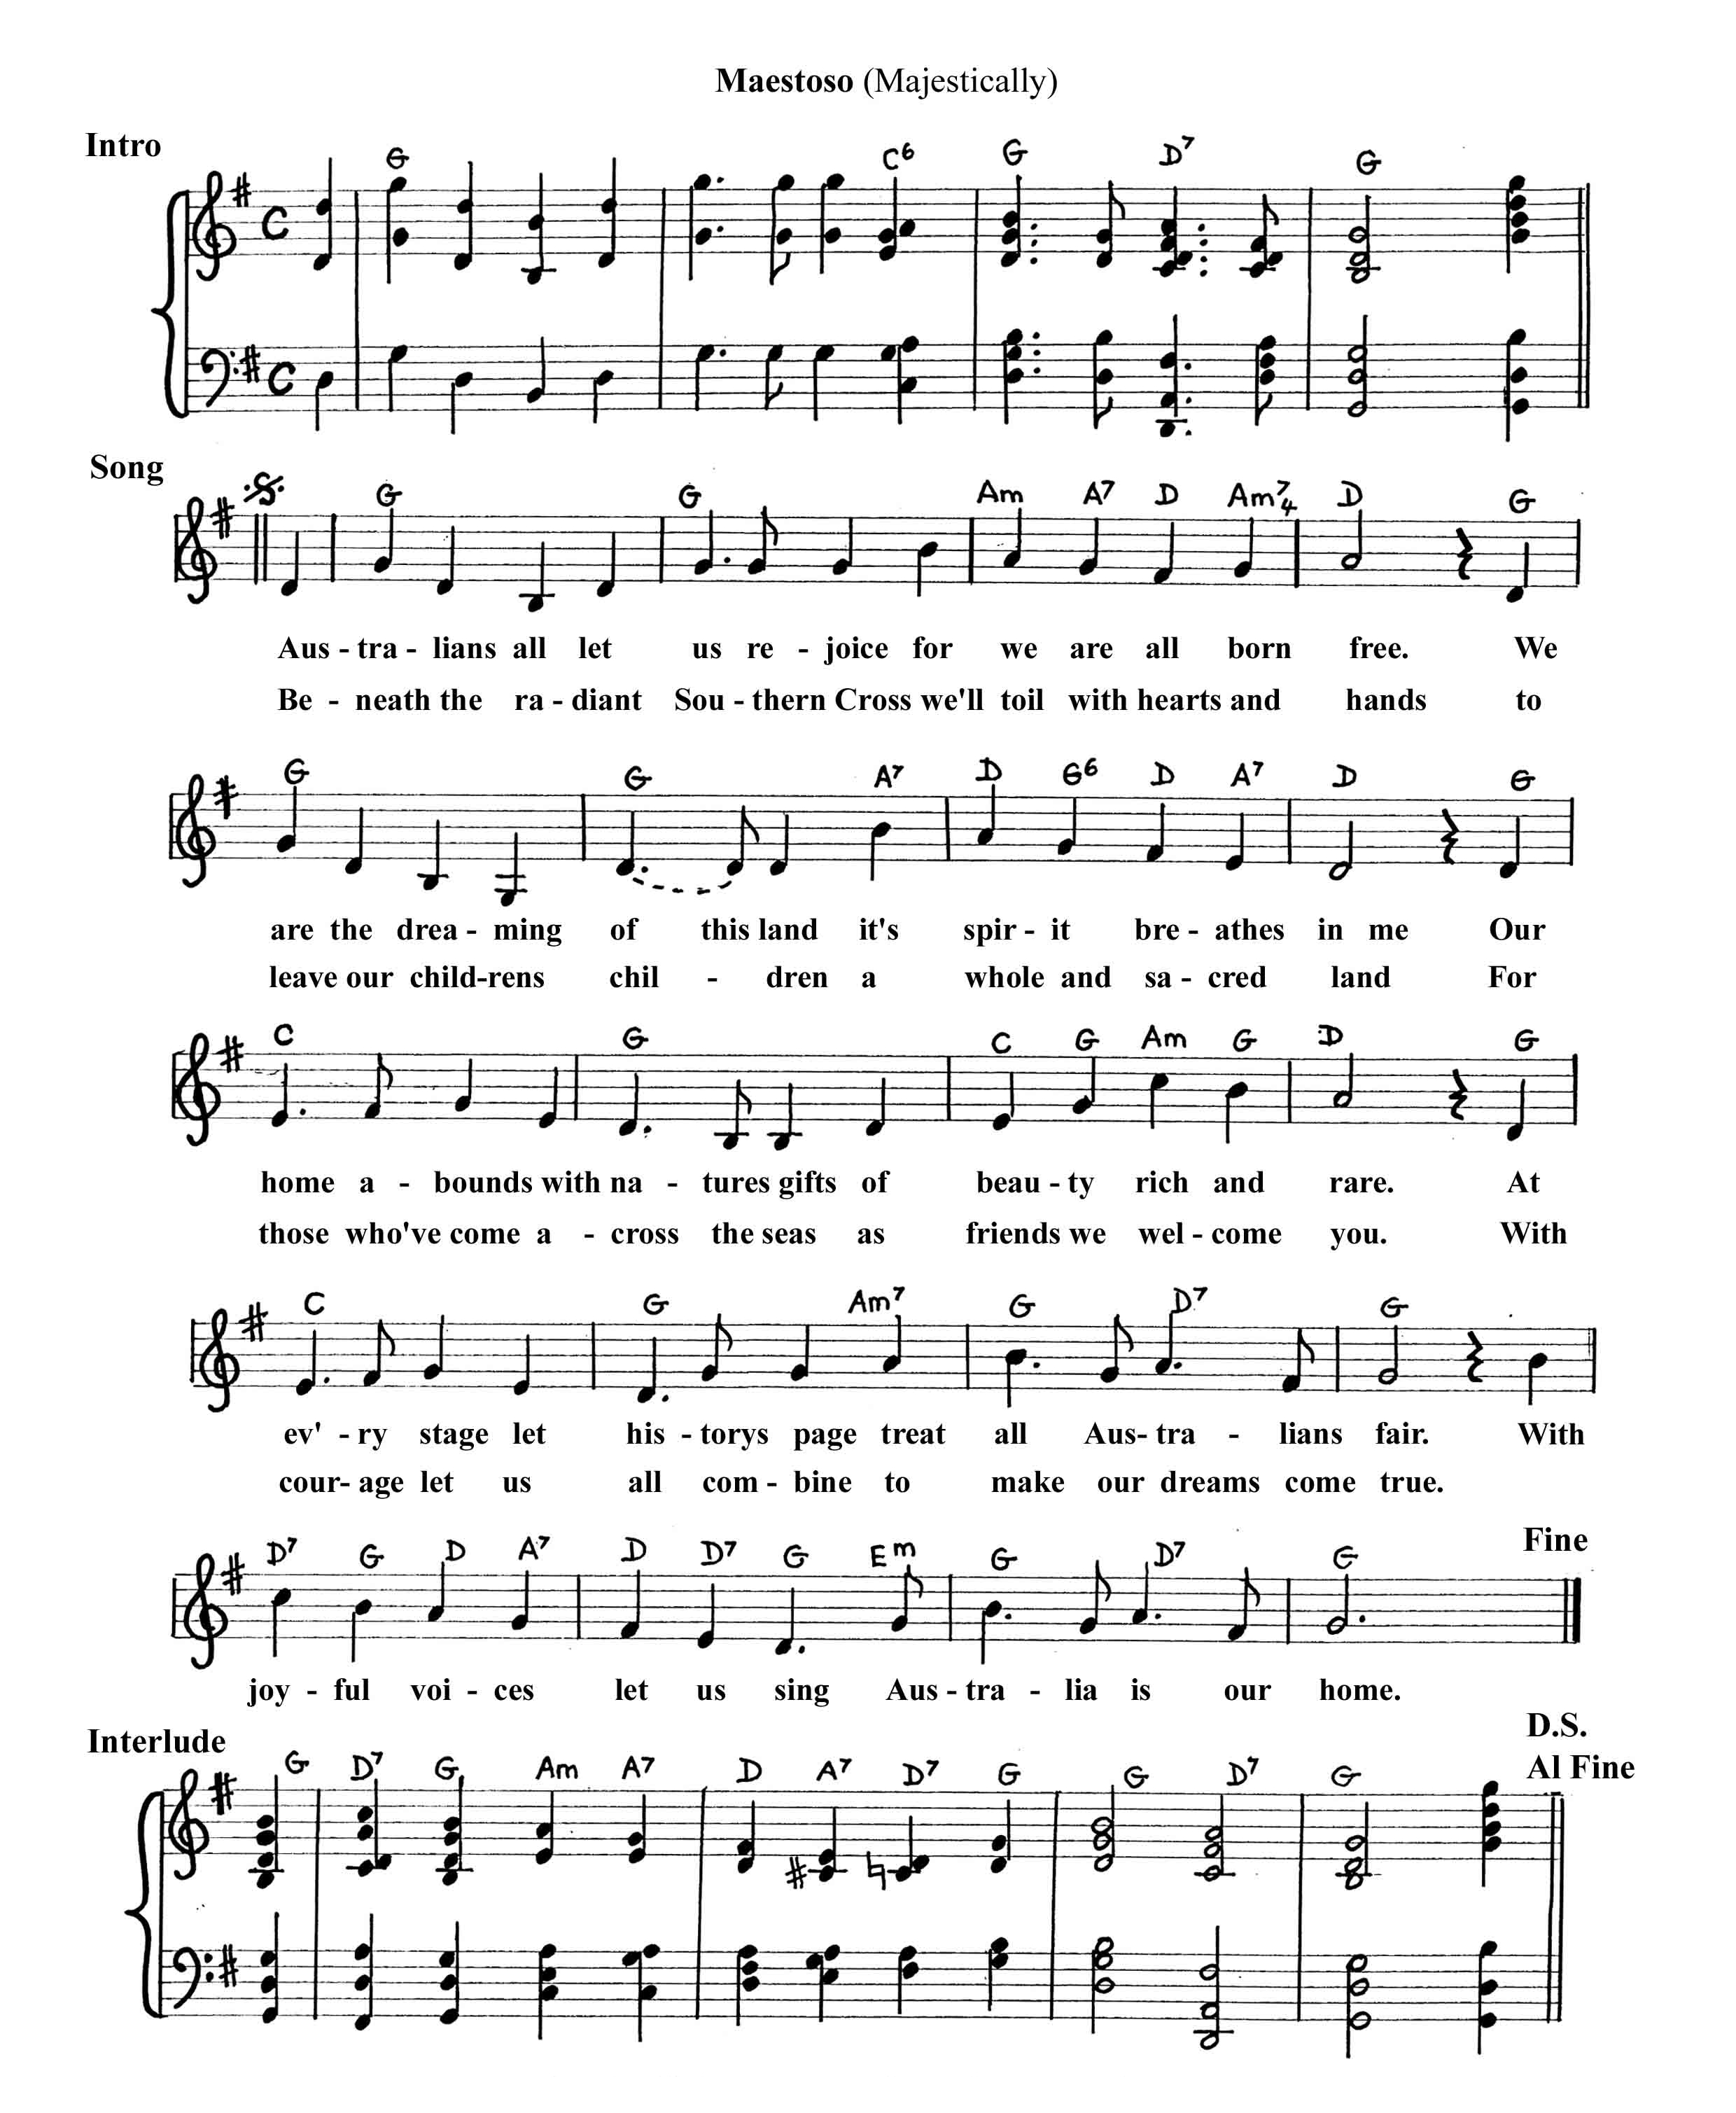 Clipart sheet music image freeuse Sheet Music Clipart - Cliparts and Others Art Inspiration image freeuse